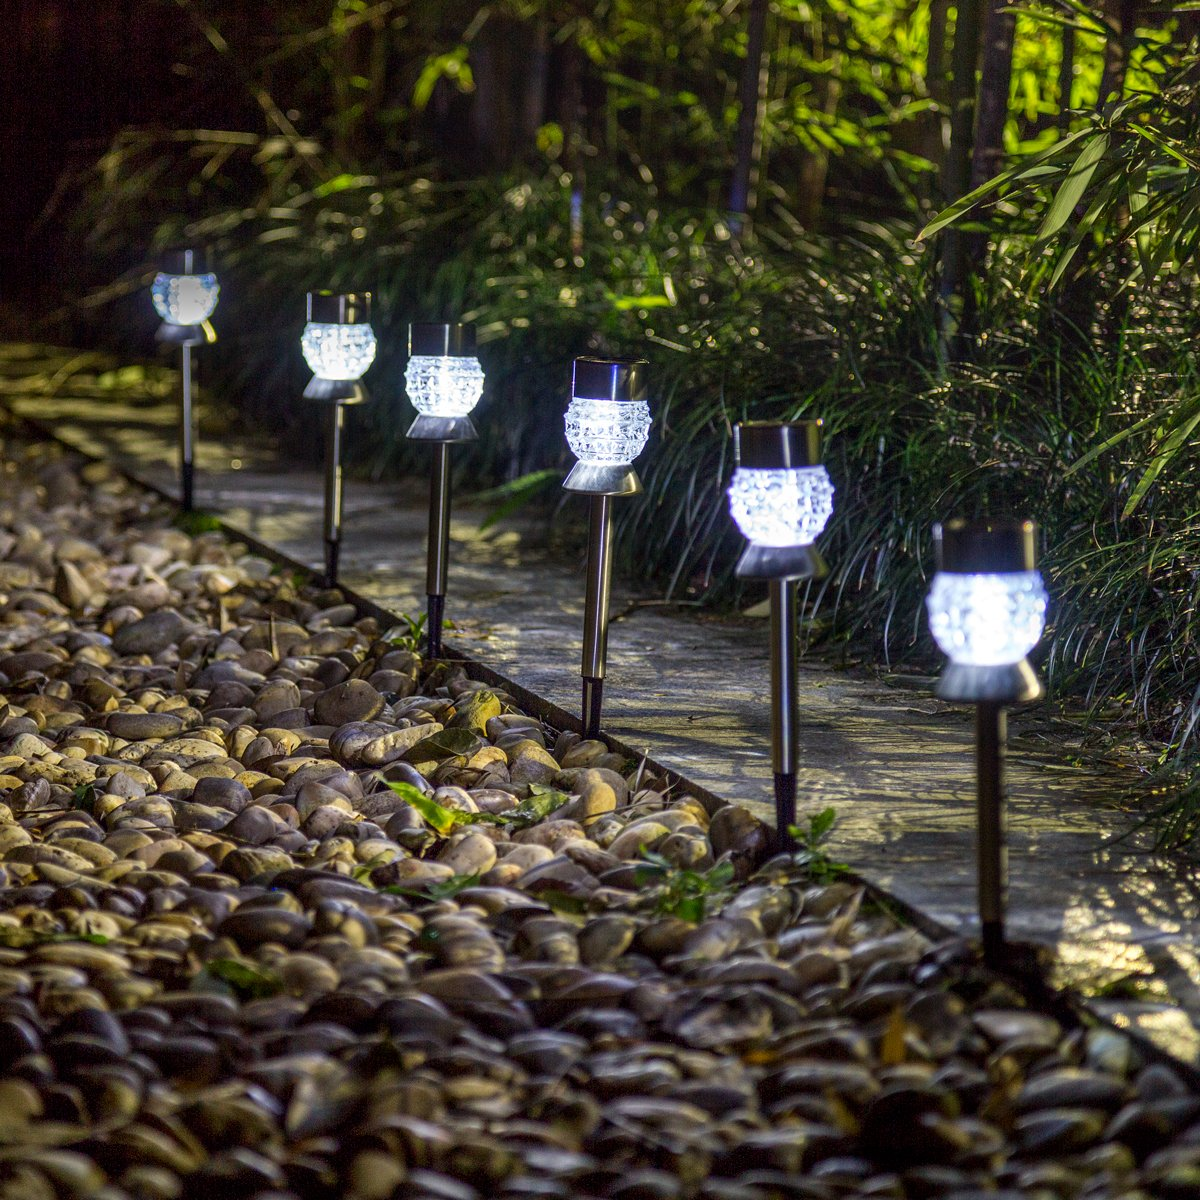 Best outdoor solar spot lights guide and reviews 2018 gigalumi solar lights stainless steel 6 pack auto onoff workwithnaturefo